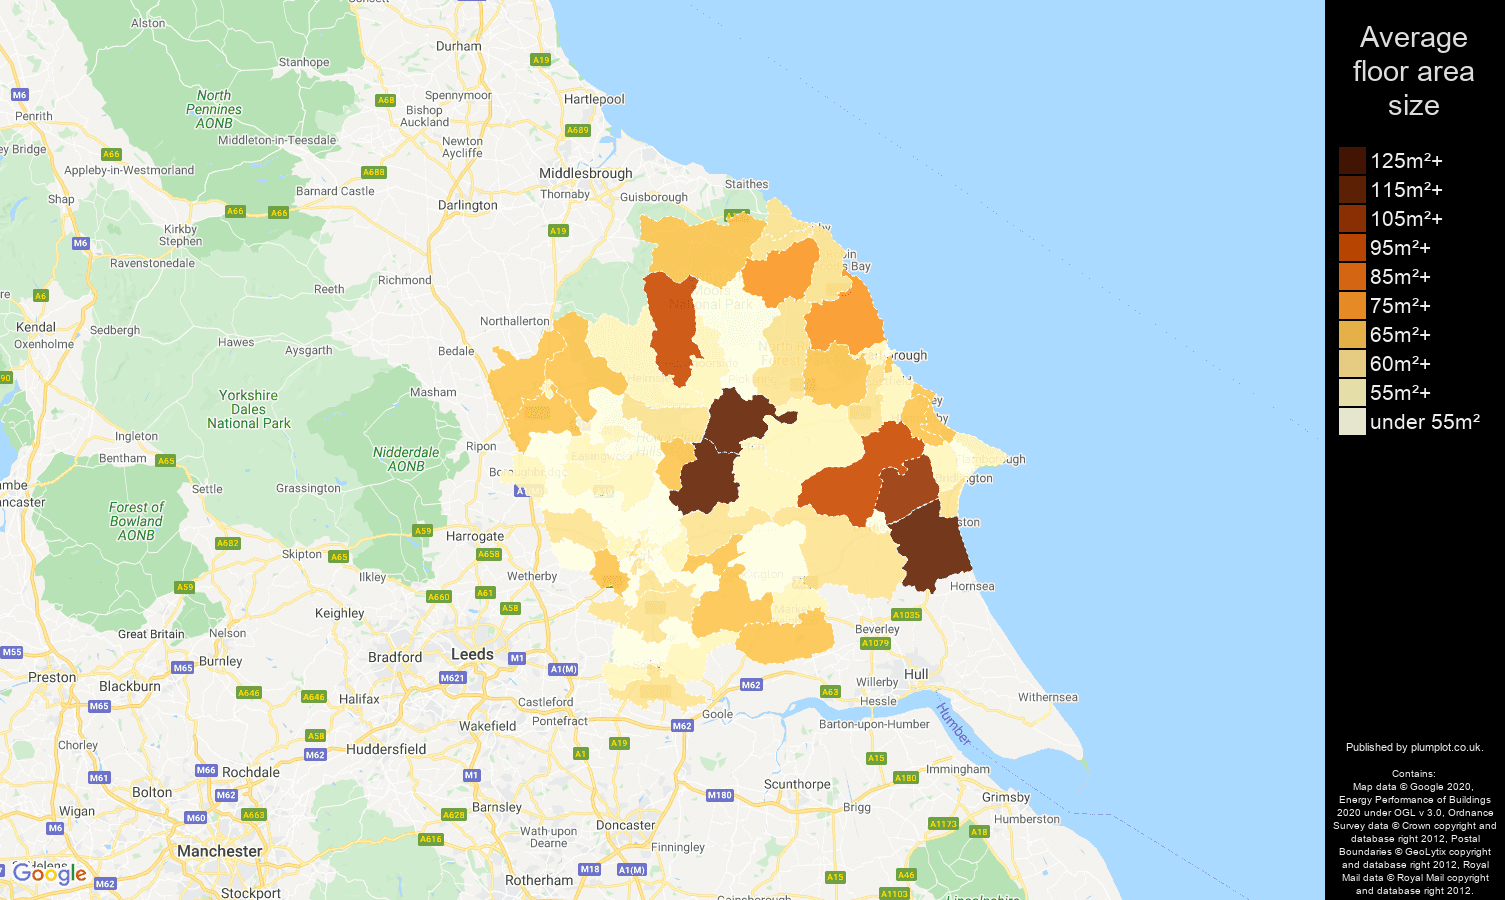 York map of average floor area size of flats